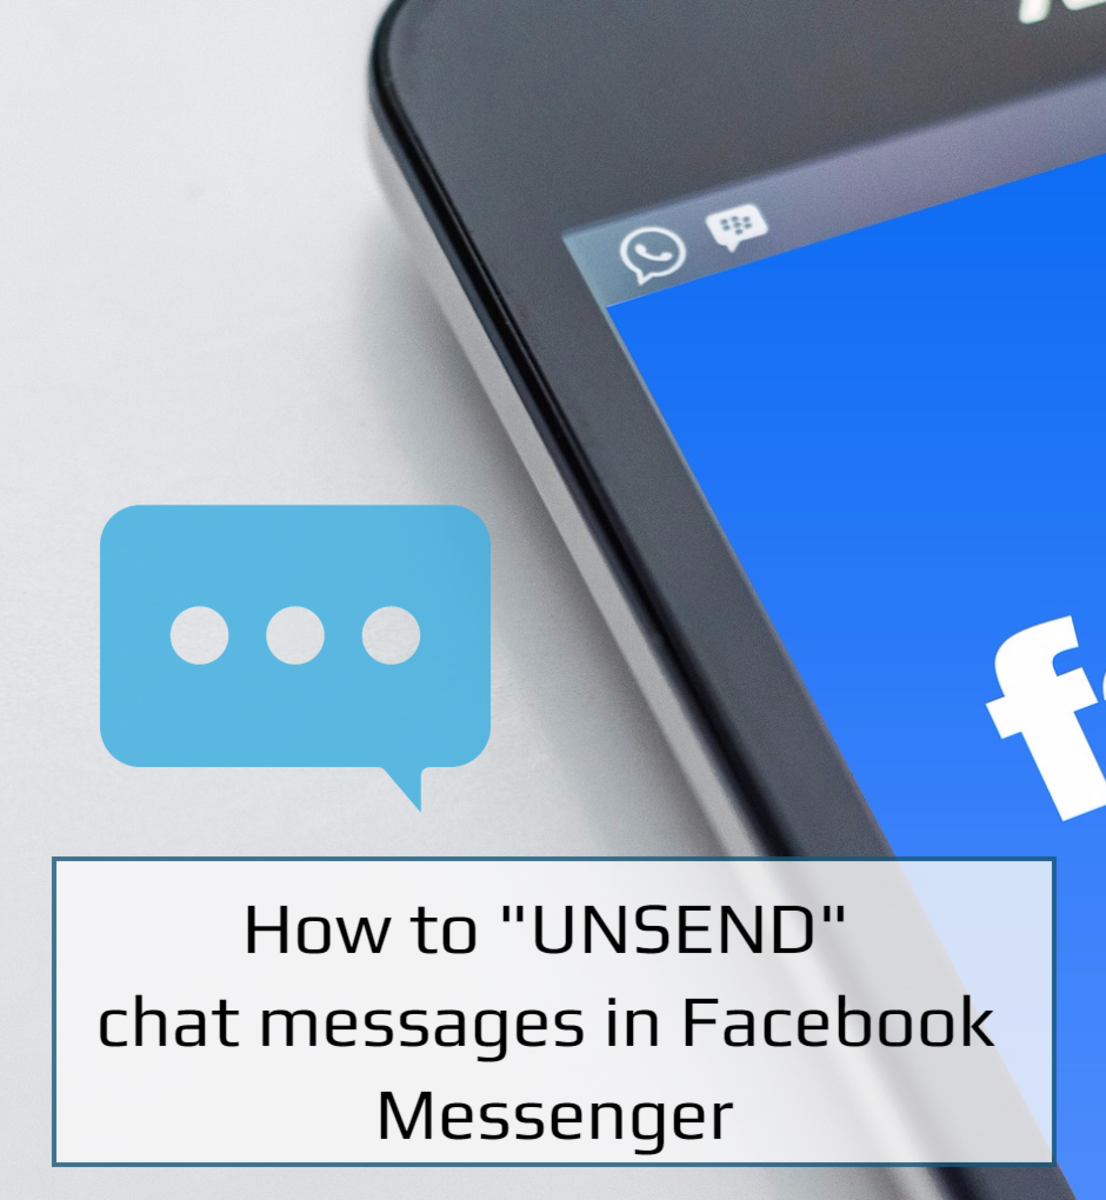 Unsend is a feature in Messenger that allows you to permanently remove a message for everyone in the chat.